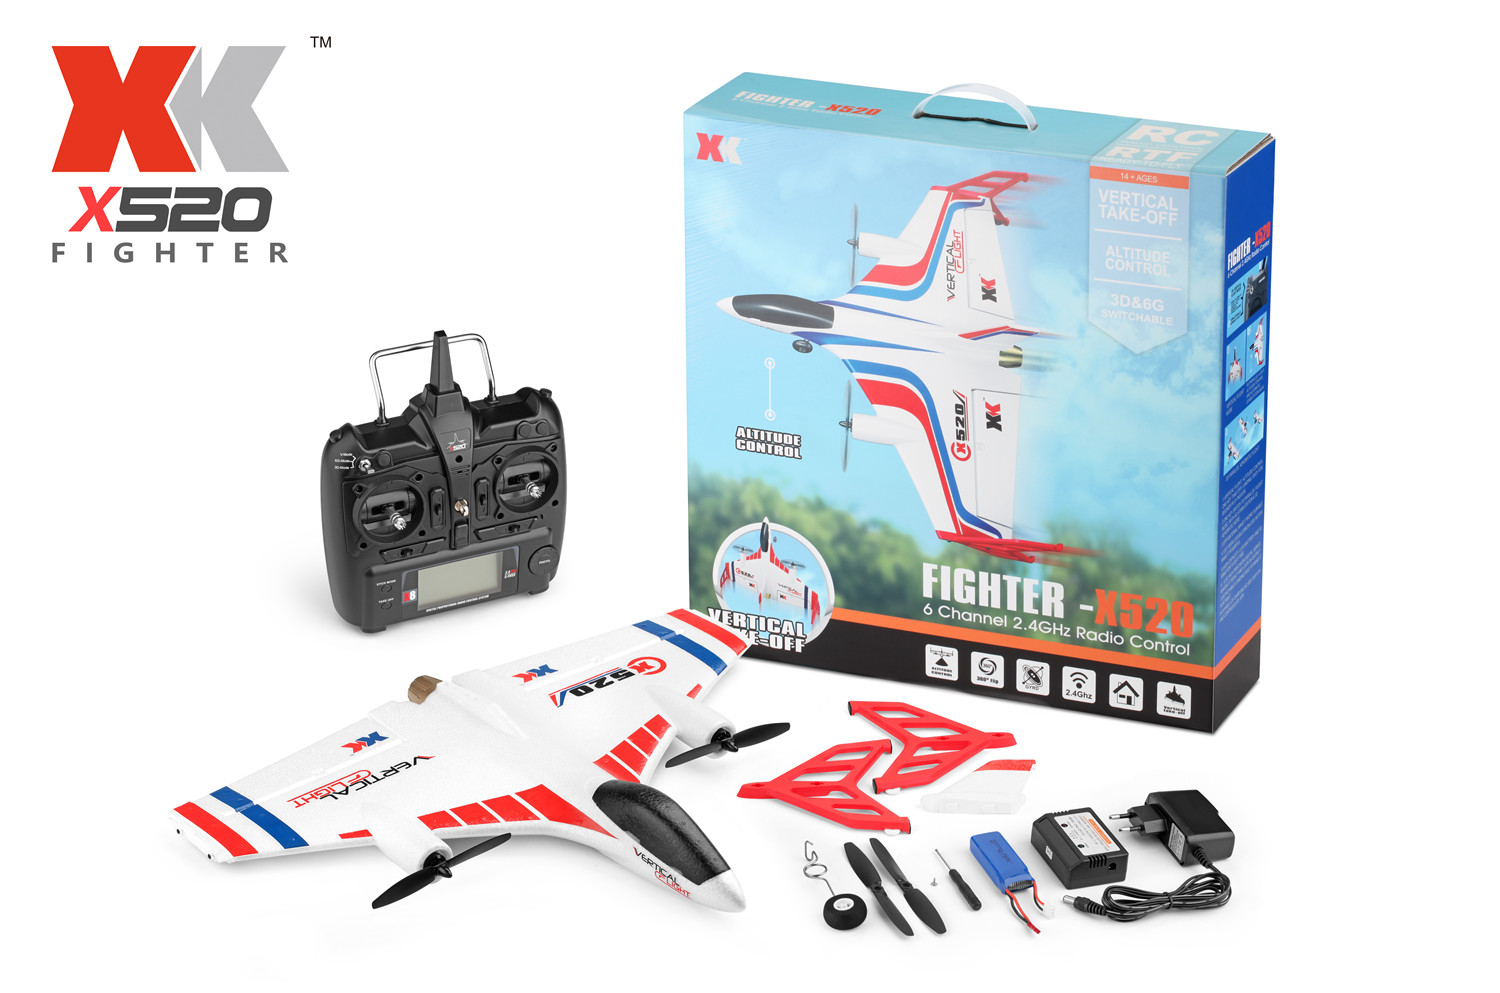 XK X520 Vtol RC Plane, XK X520 brushless vtol Airplane